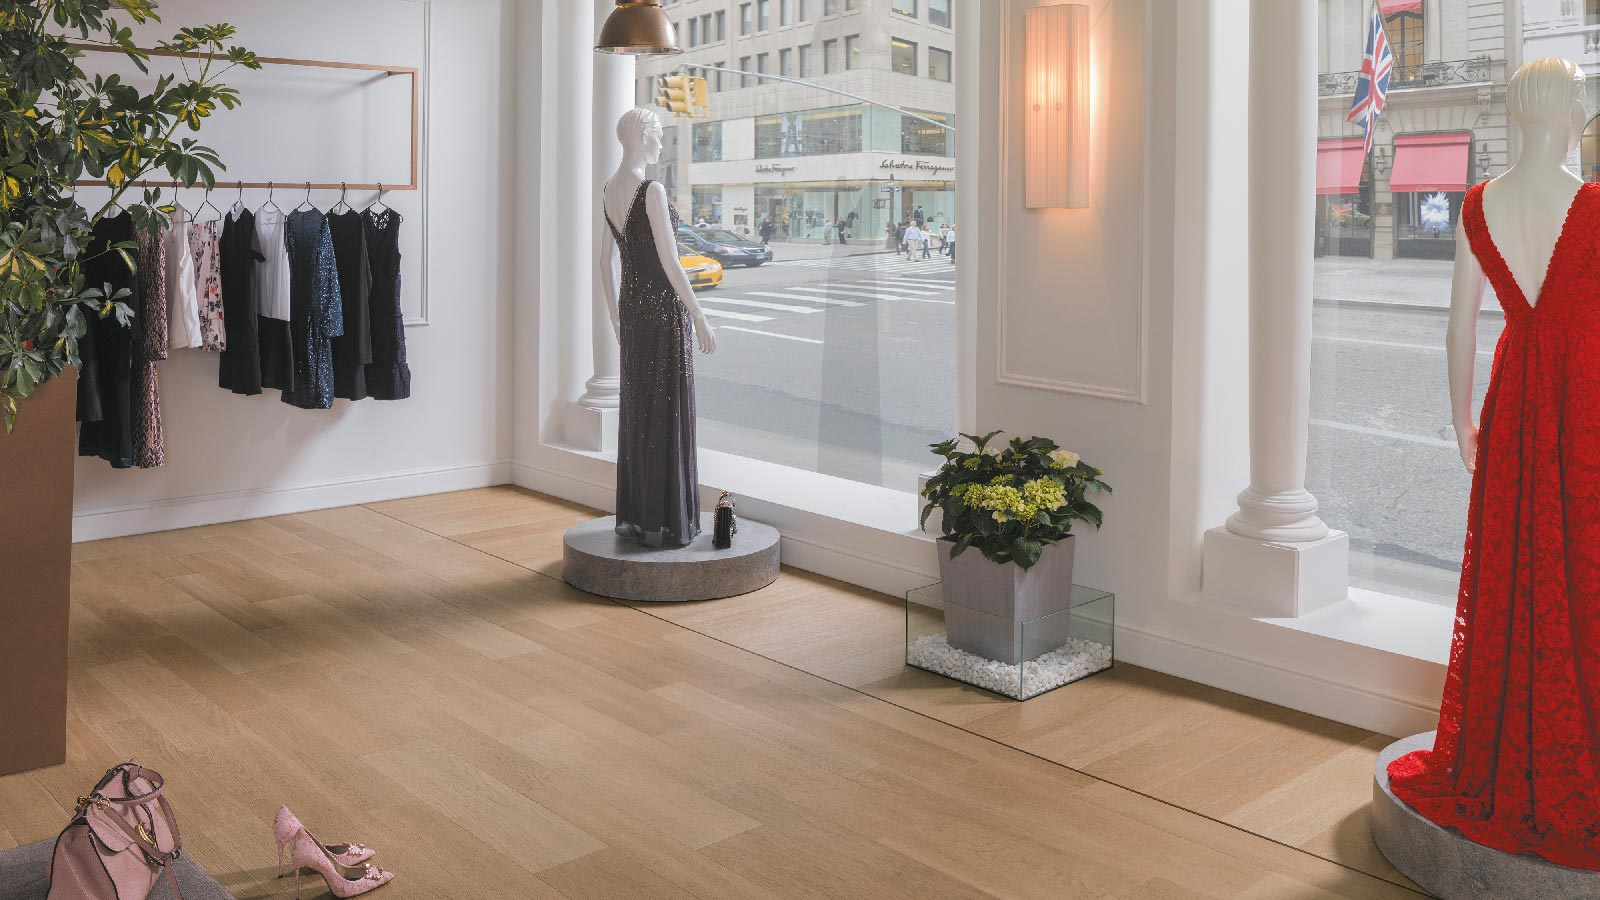 The Porcelanosa Grupo banks on a sustainable design for the retail sector